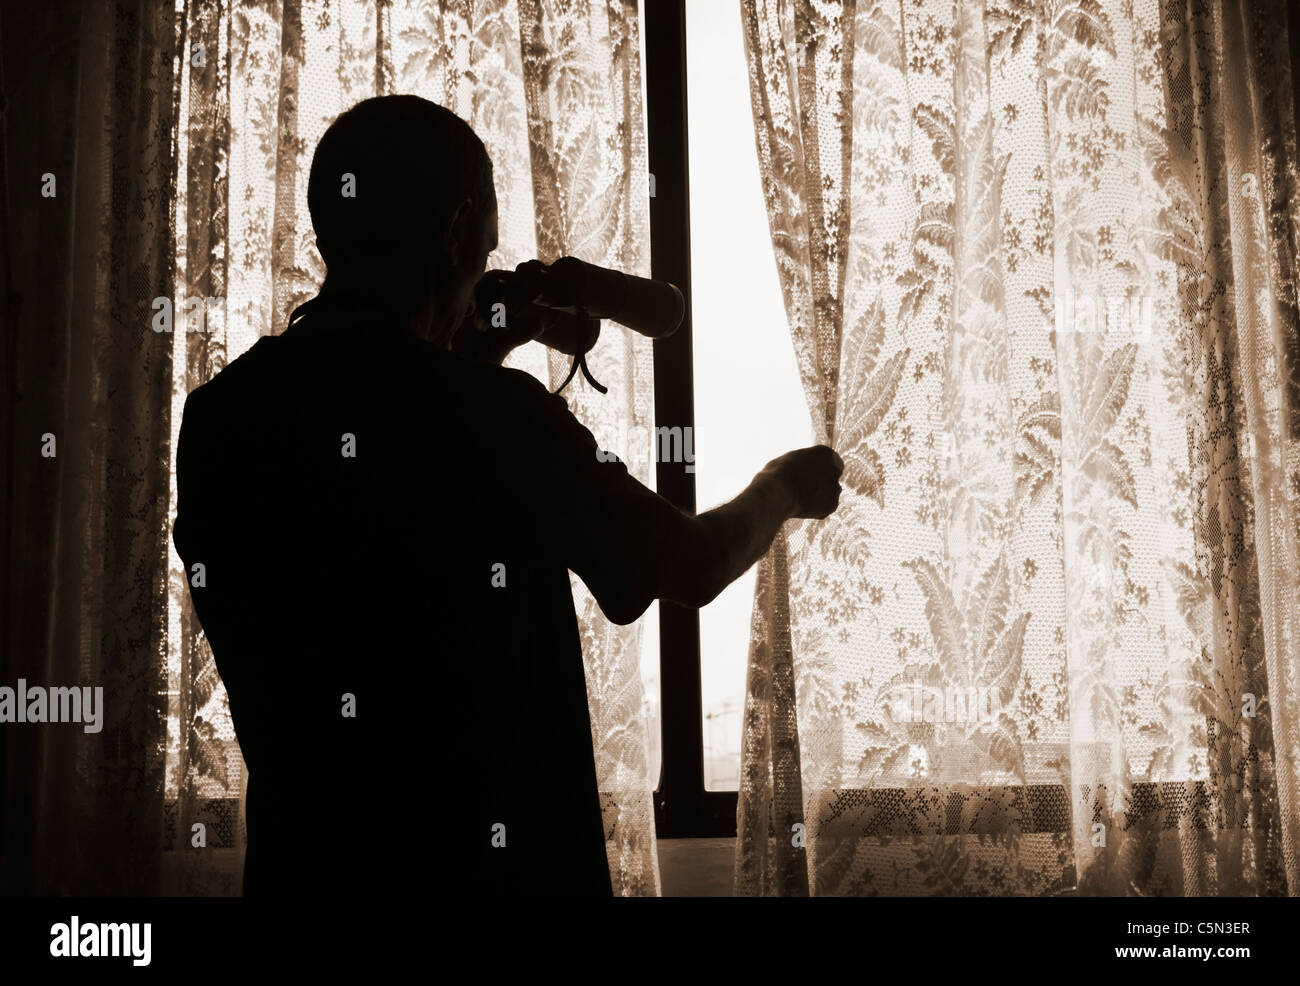 Man with binoculars looking out of window from behind net curtains - Stock Image